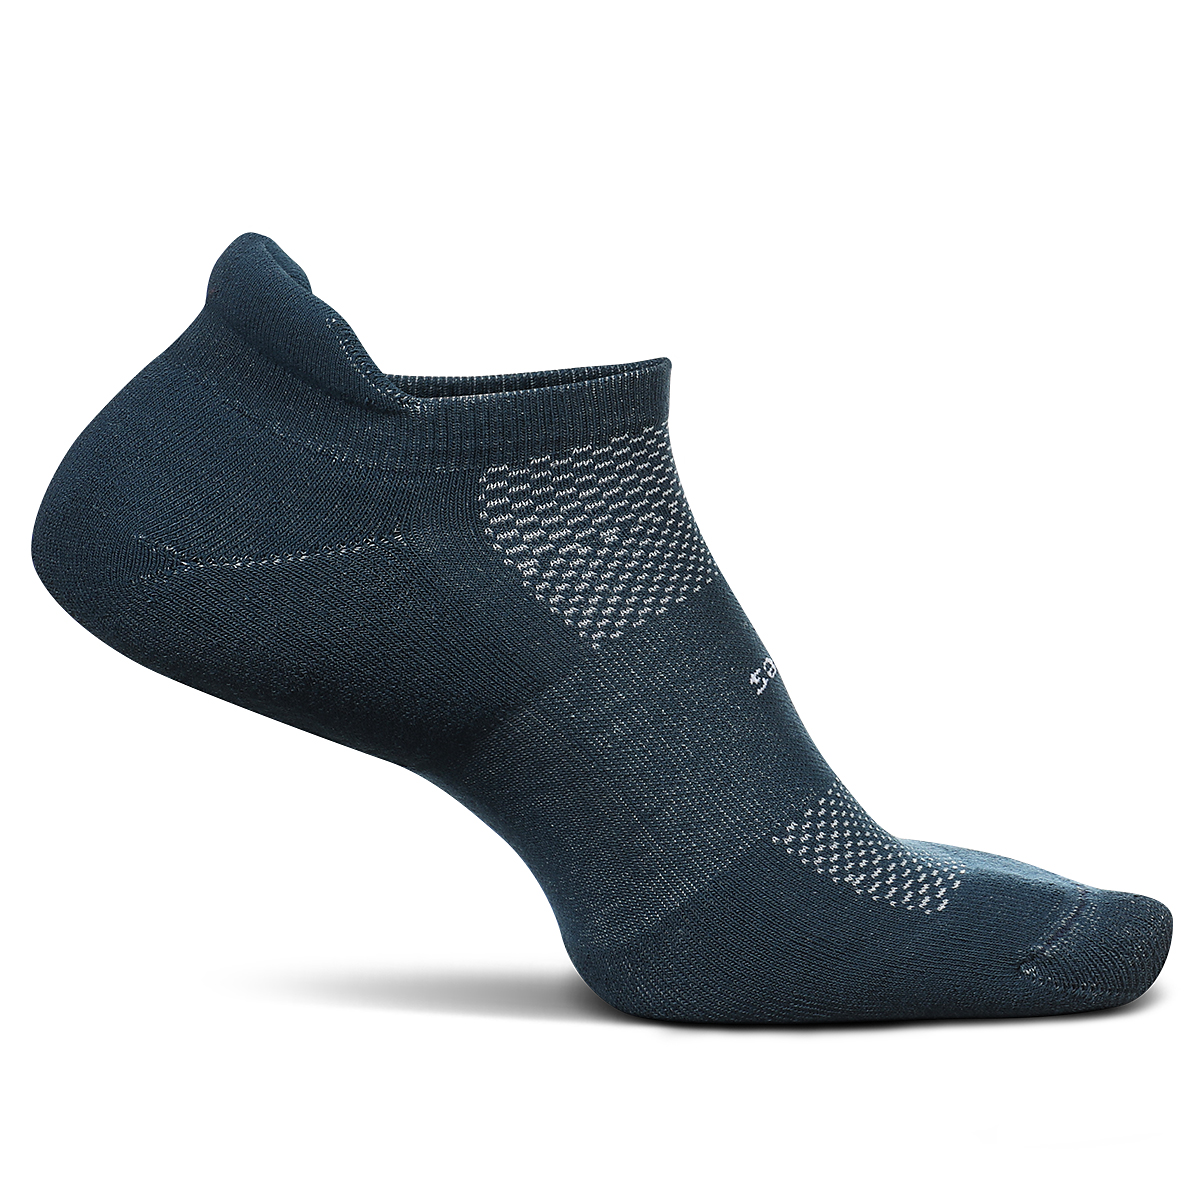 Feetures High Performance Ultra Light No Show Tab Socks - Color: French Navy - Size: S, French Navy, large, image 1